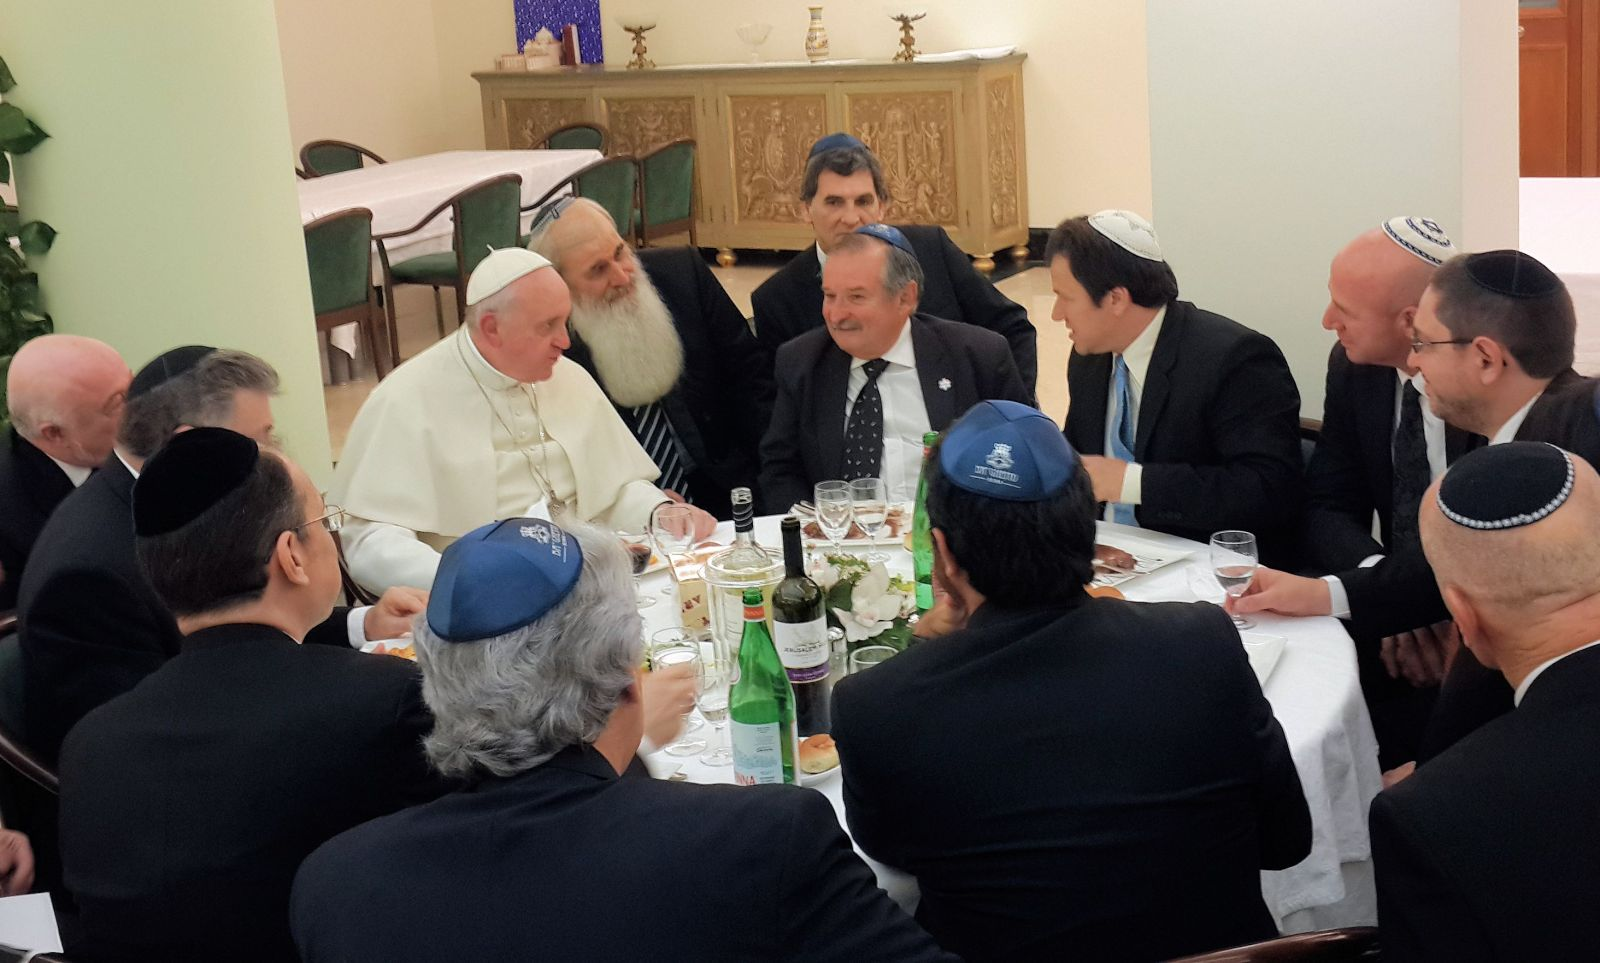 Pope Francis conversing with members of the Jewish community of Argentina at the Santa Marta guesthouse